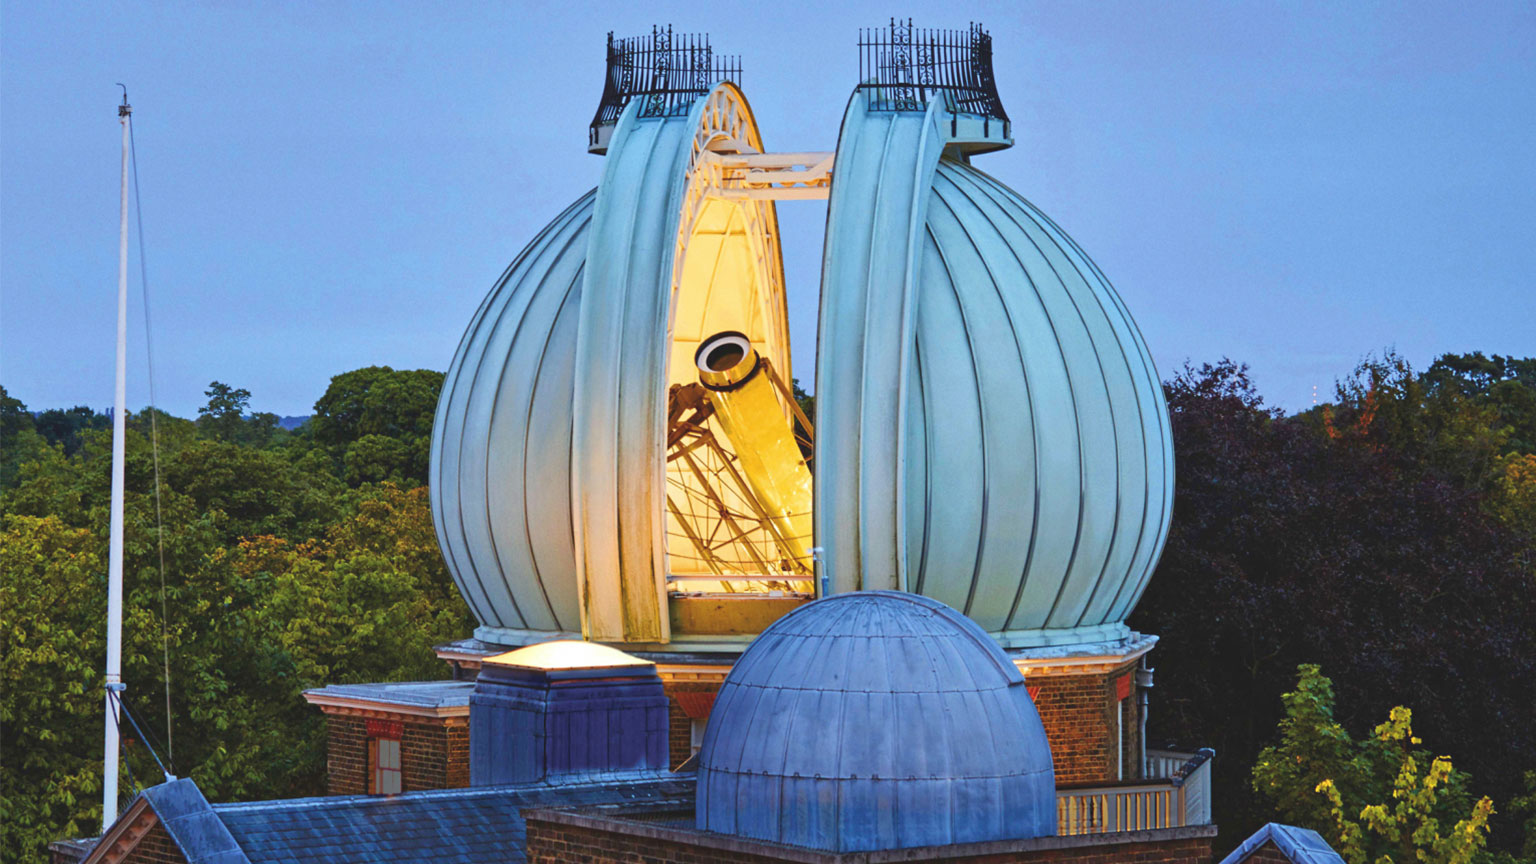 Find Out Things You Need To Know Before Going to The Royal Observatory Greenwich